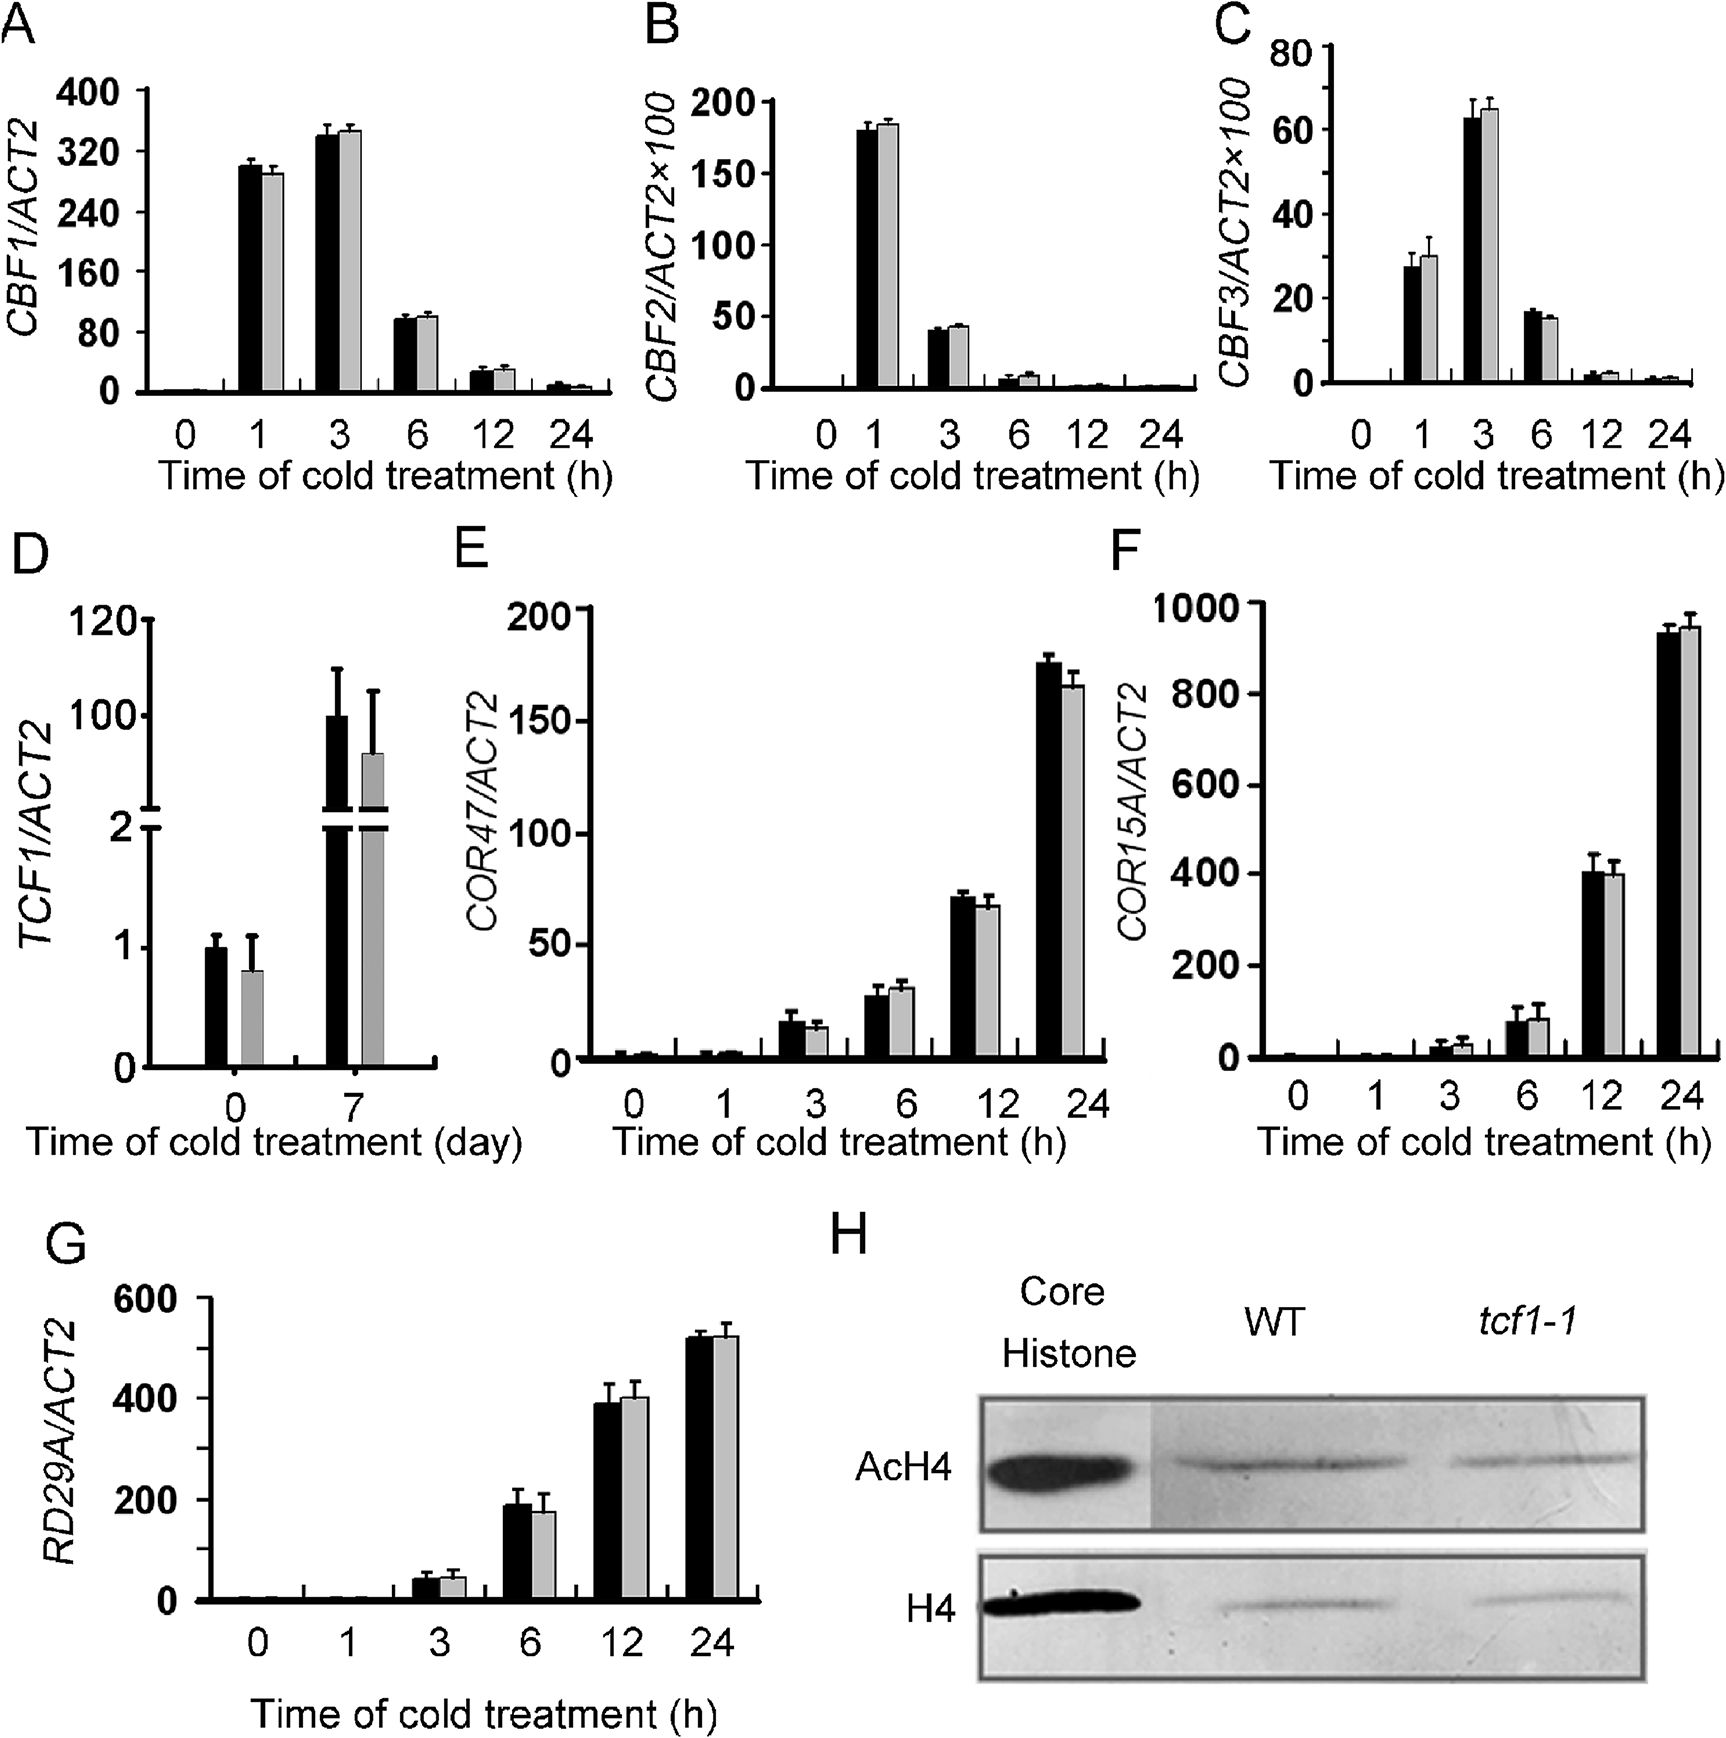 Gene expression analyses of the CBFs and the CBF regulon in the <i>tcf1-1</i> and wild-type plants.